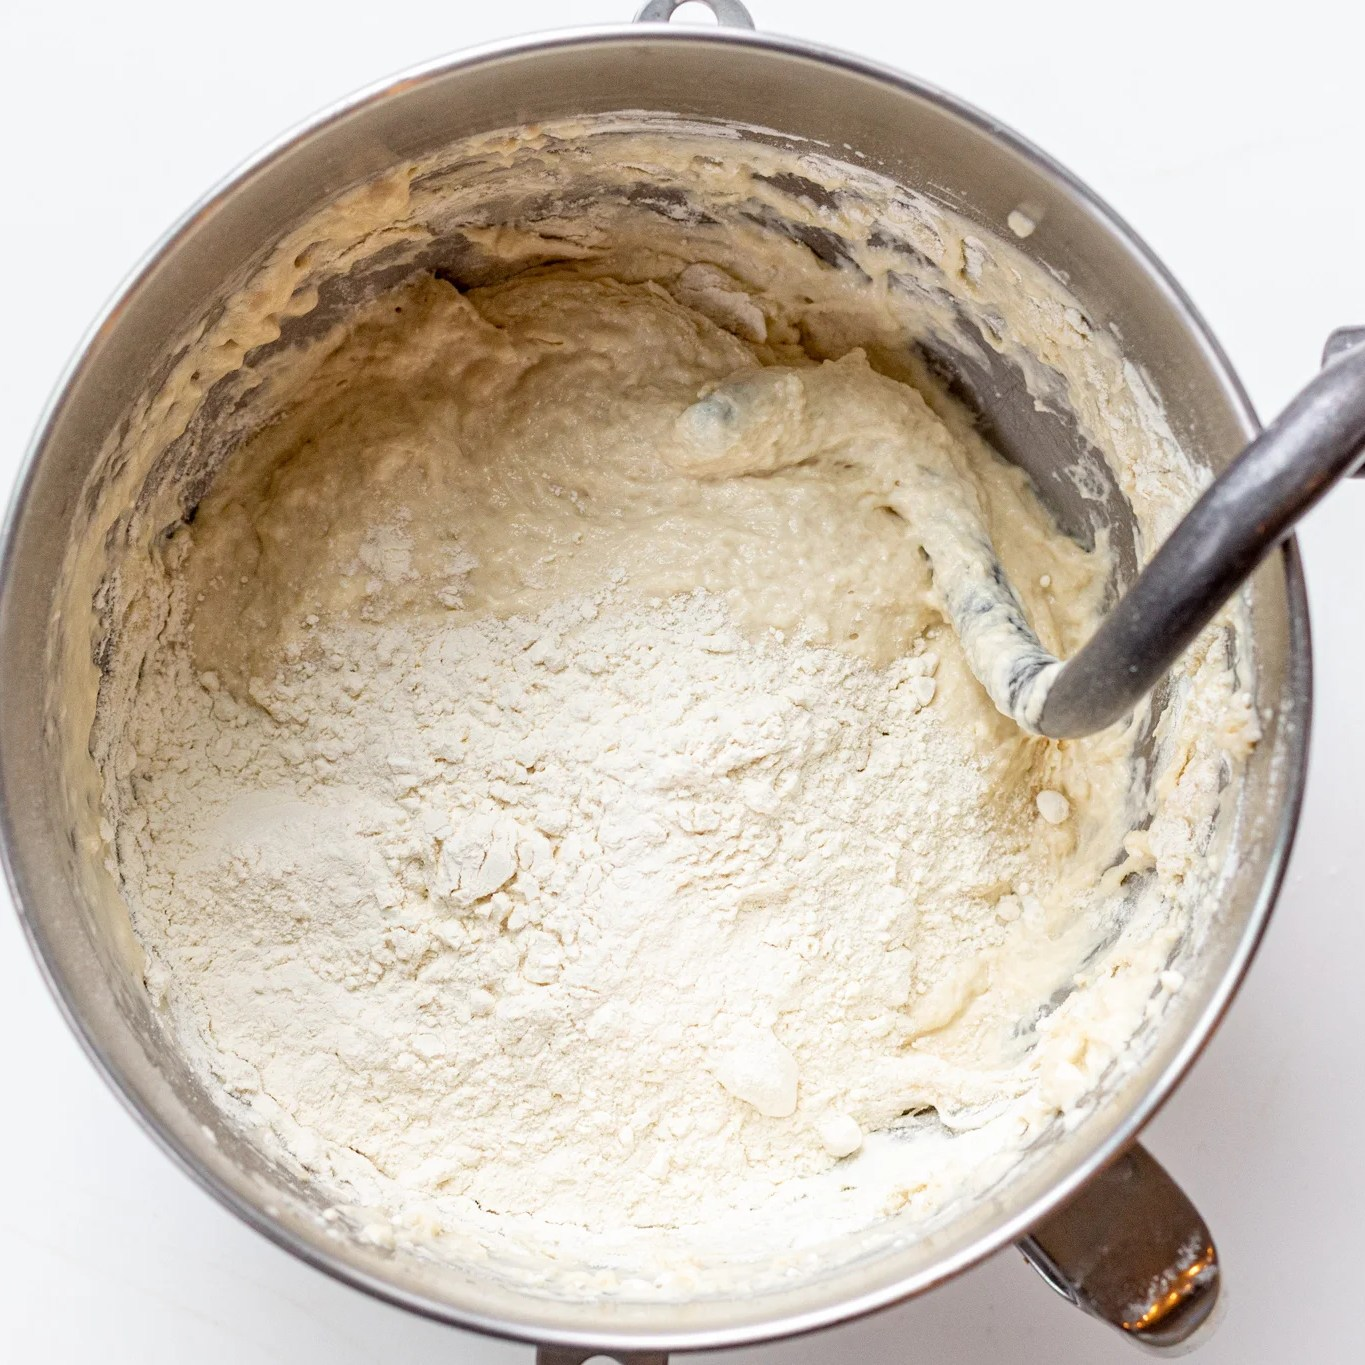 Dough in a mixing bowl